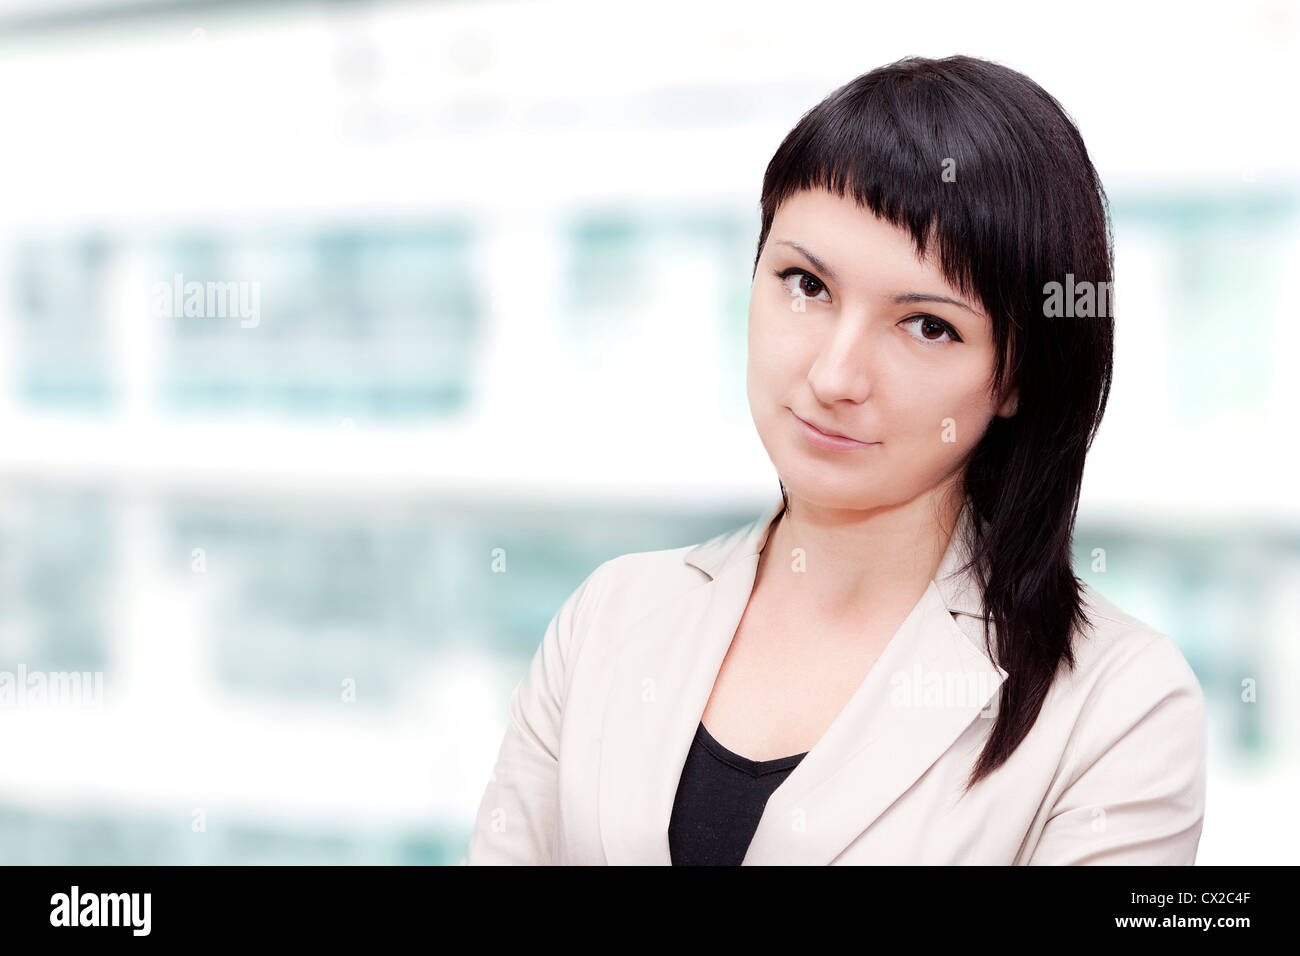 2bdaeb00fd4 clean modern portrait of a young professional business woman with ample  copyspace.